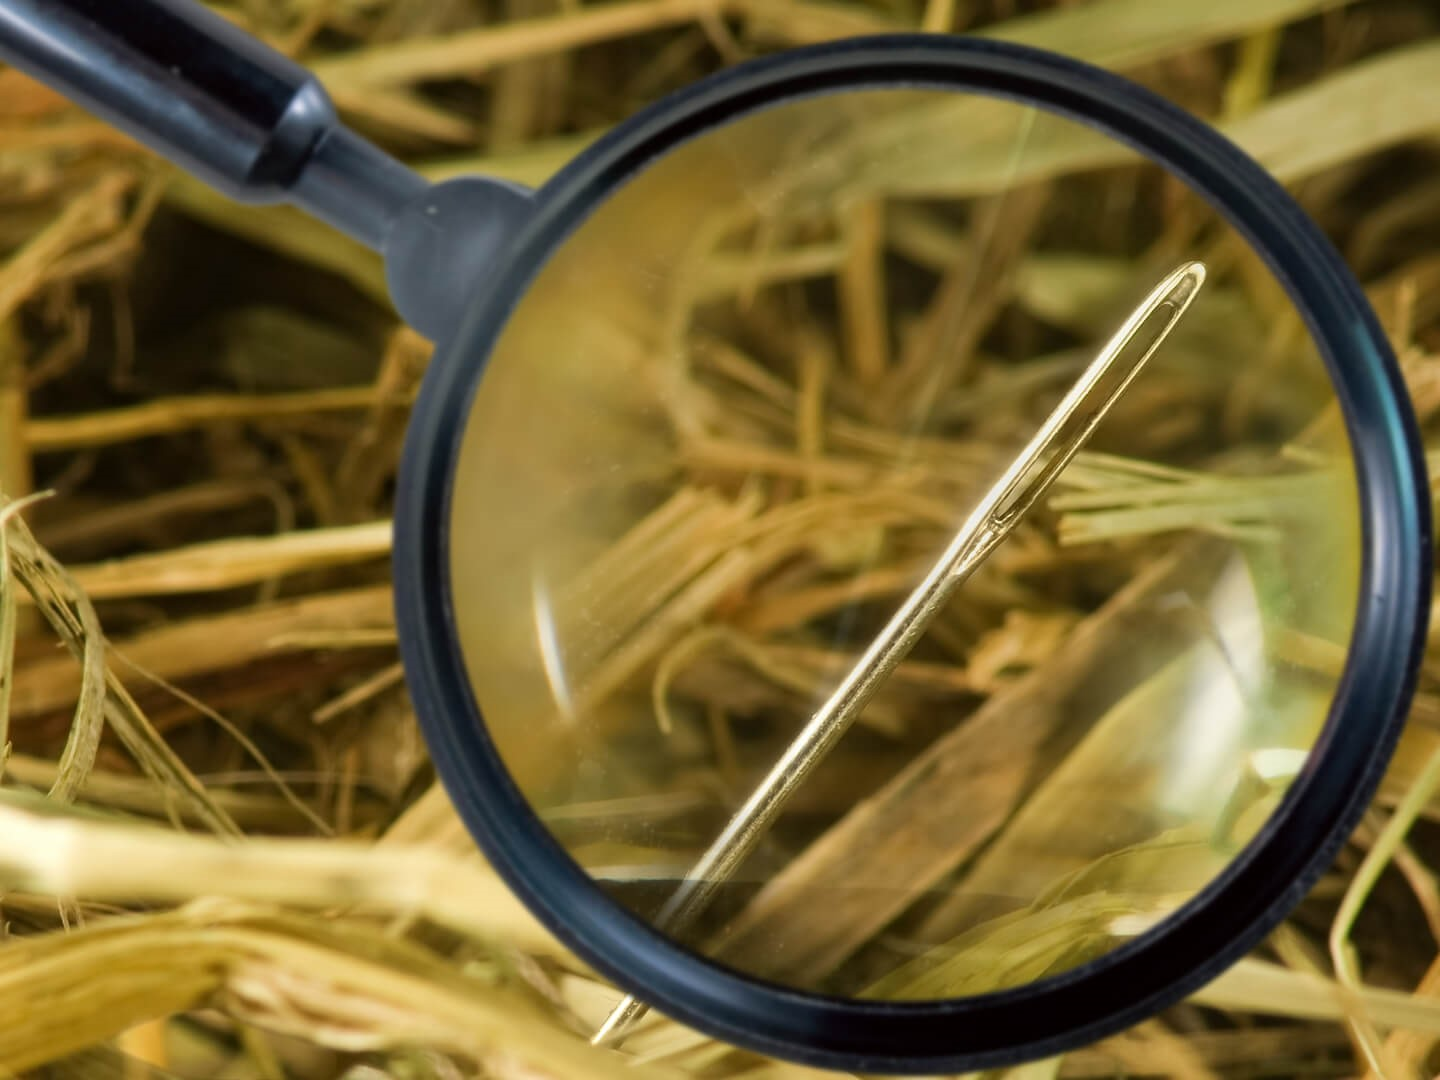 Needles in a haystack: Picking unwanted UEFI components out of millions of samples